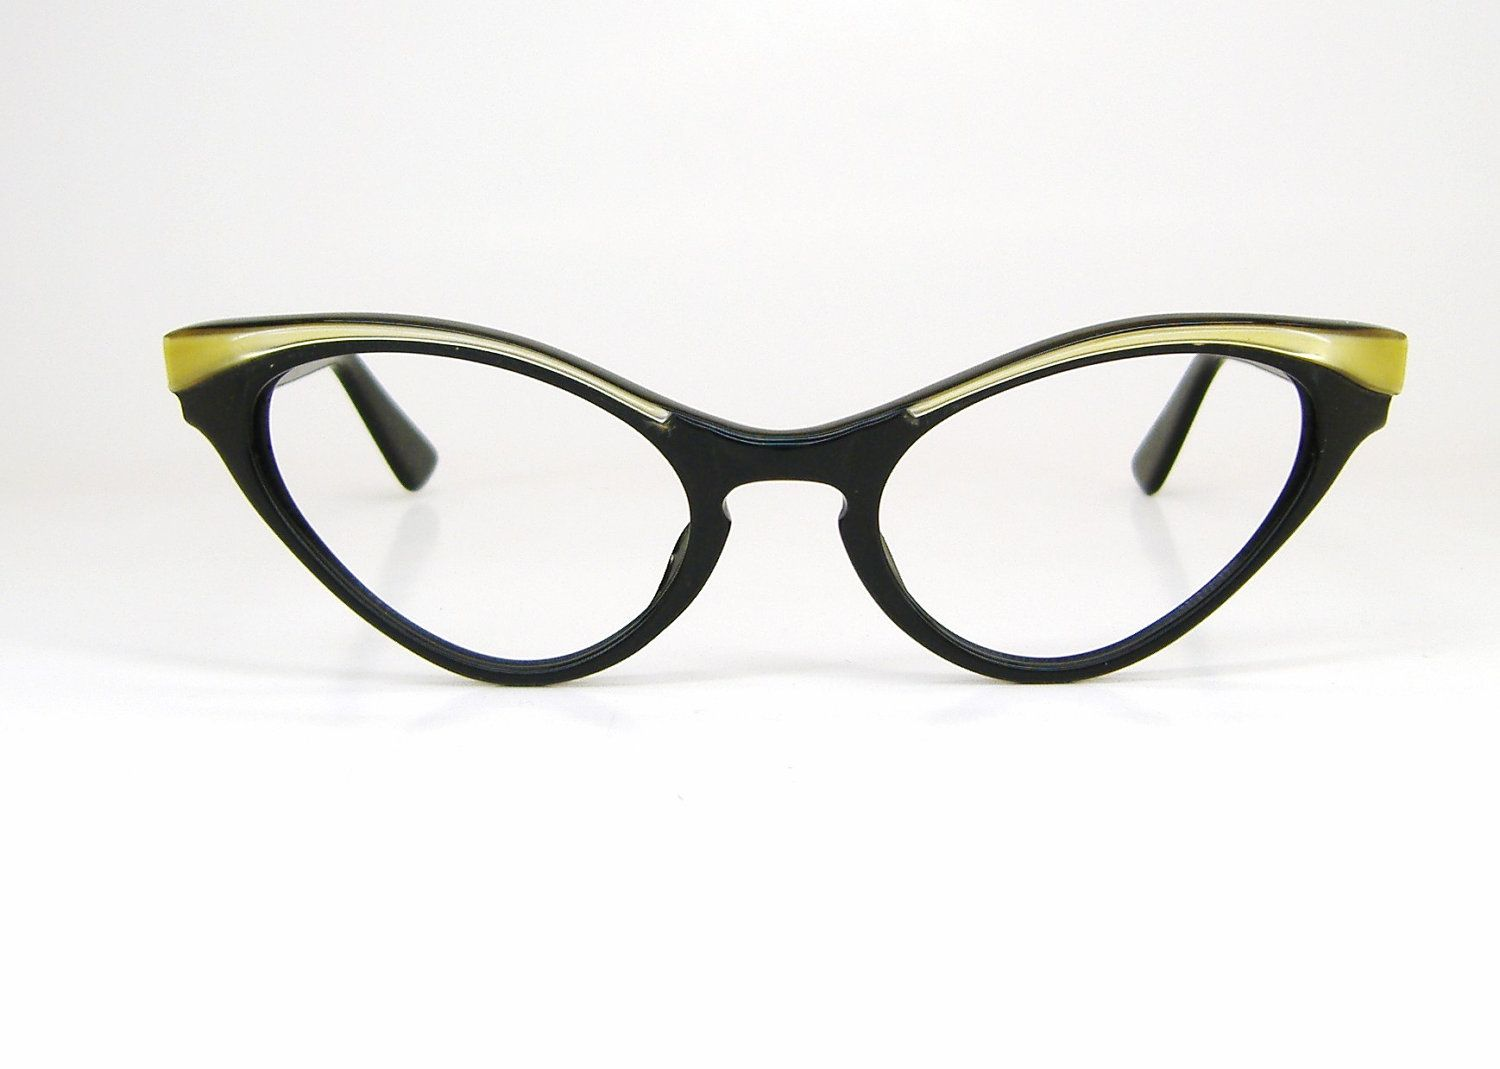 Vintage 50s Cat Eye Eyeglasses or Sunglasses Winged Black and Gold ...